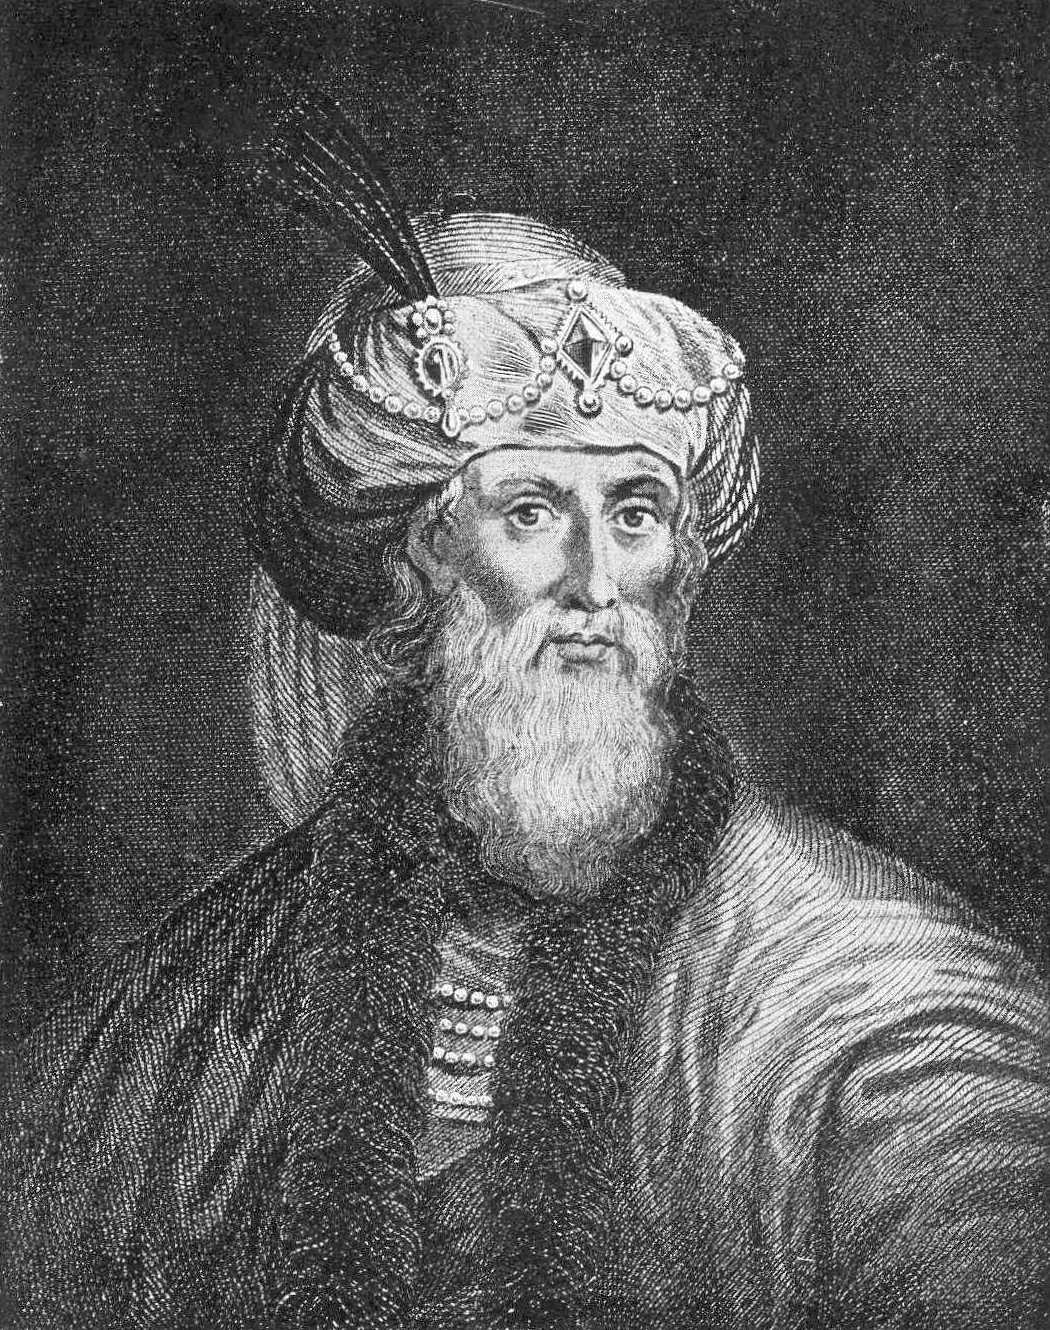 The [[Romanticism|romanticized]] engraving of Flavius Josephus appearing in [[William Whiston]]'s translation of his works